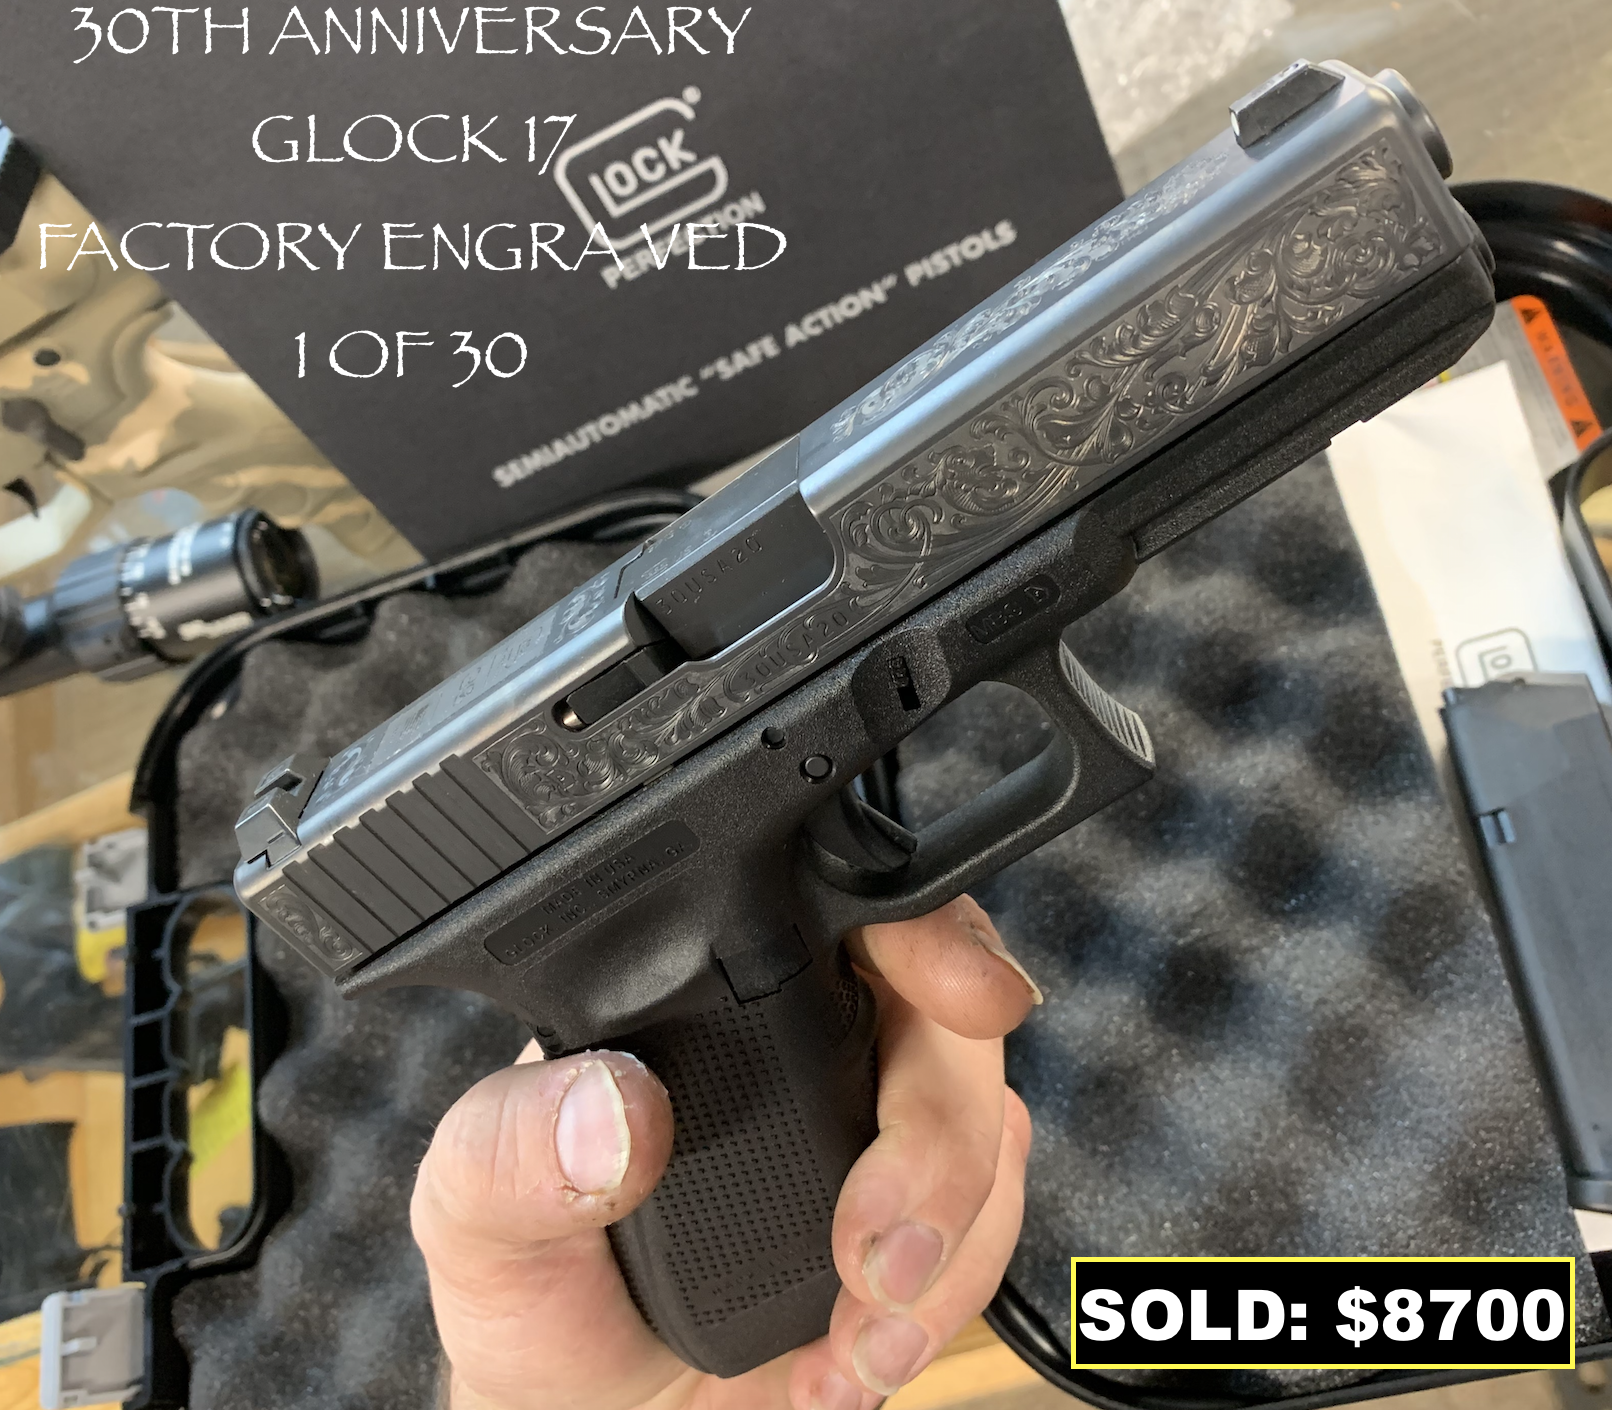 Vintage Firearm Limited Edition Glock17